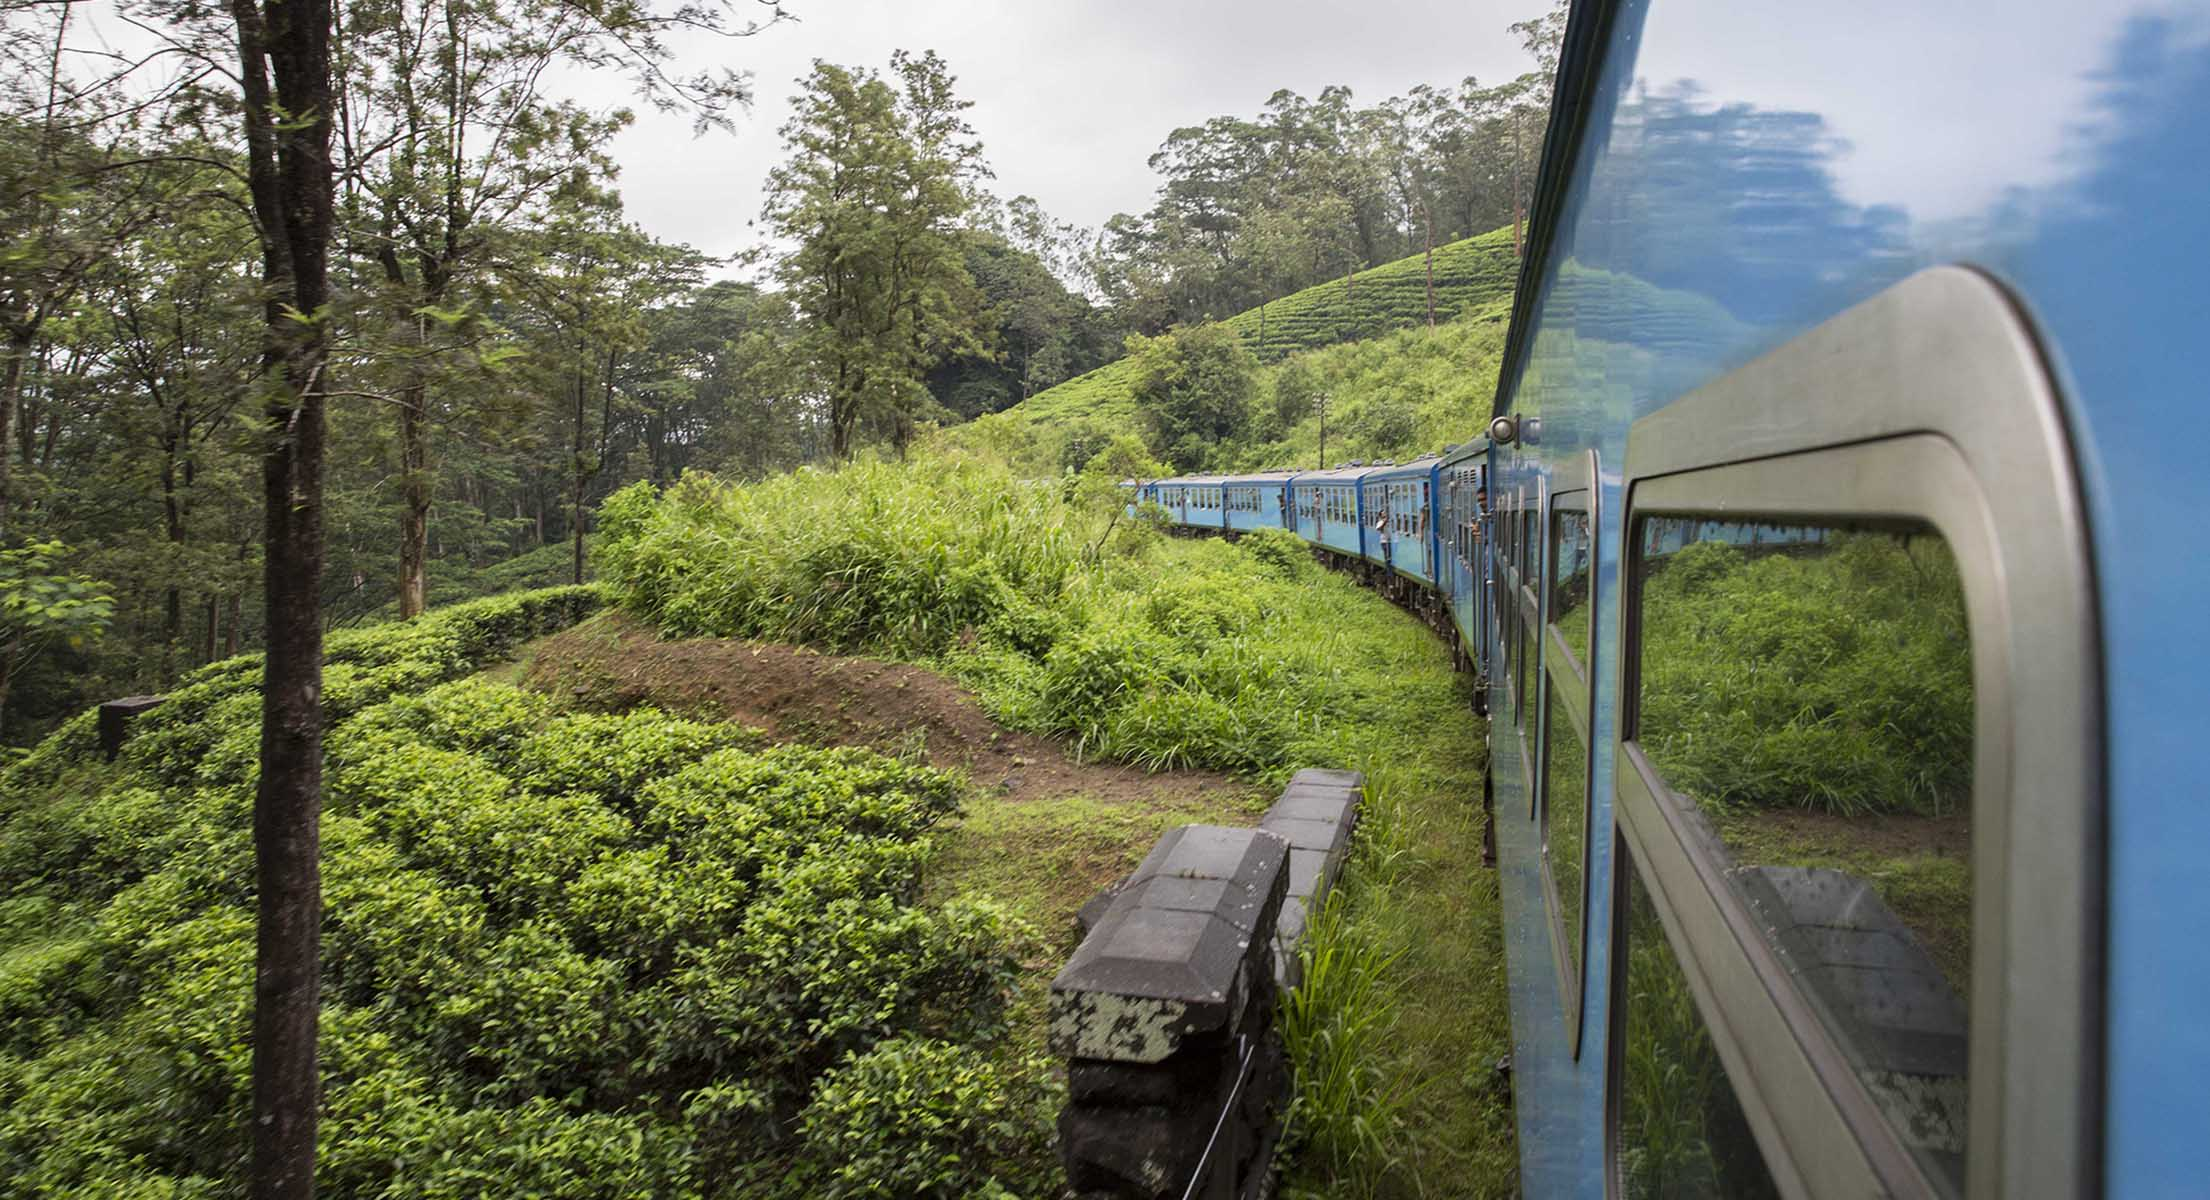 Passing Through Tea Plantation